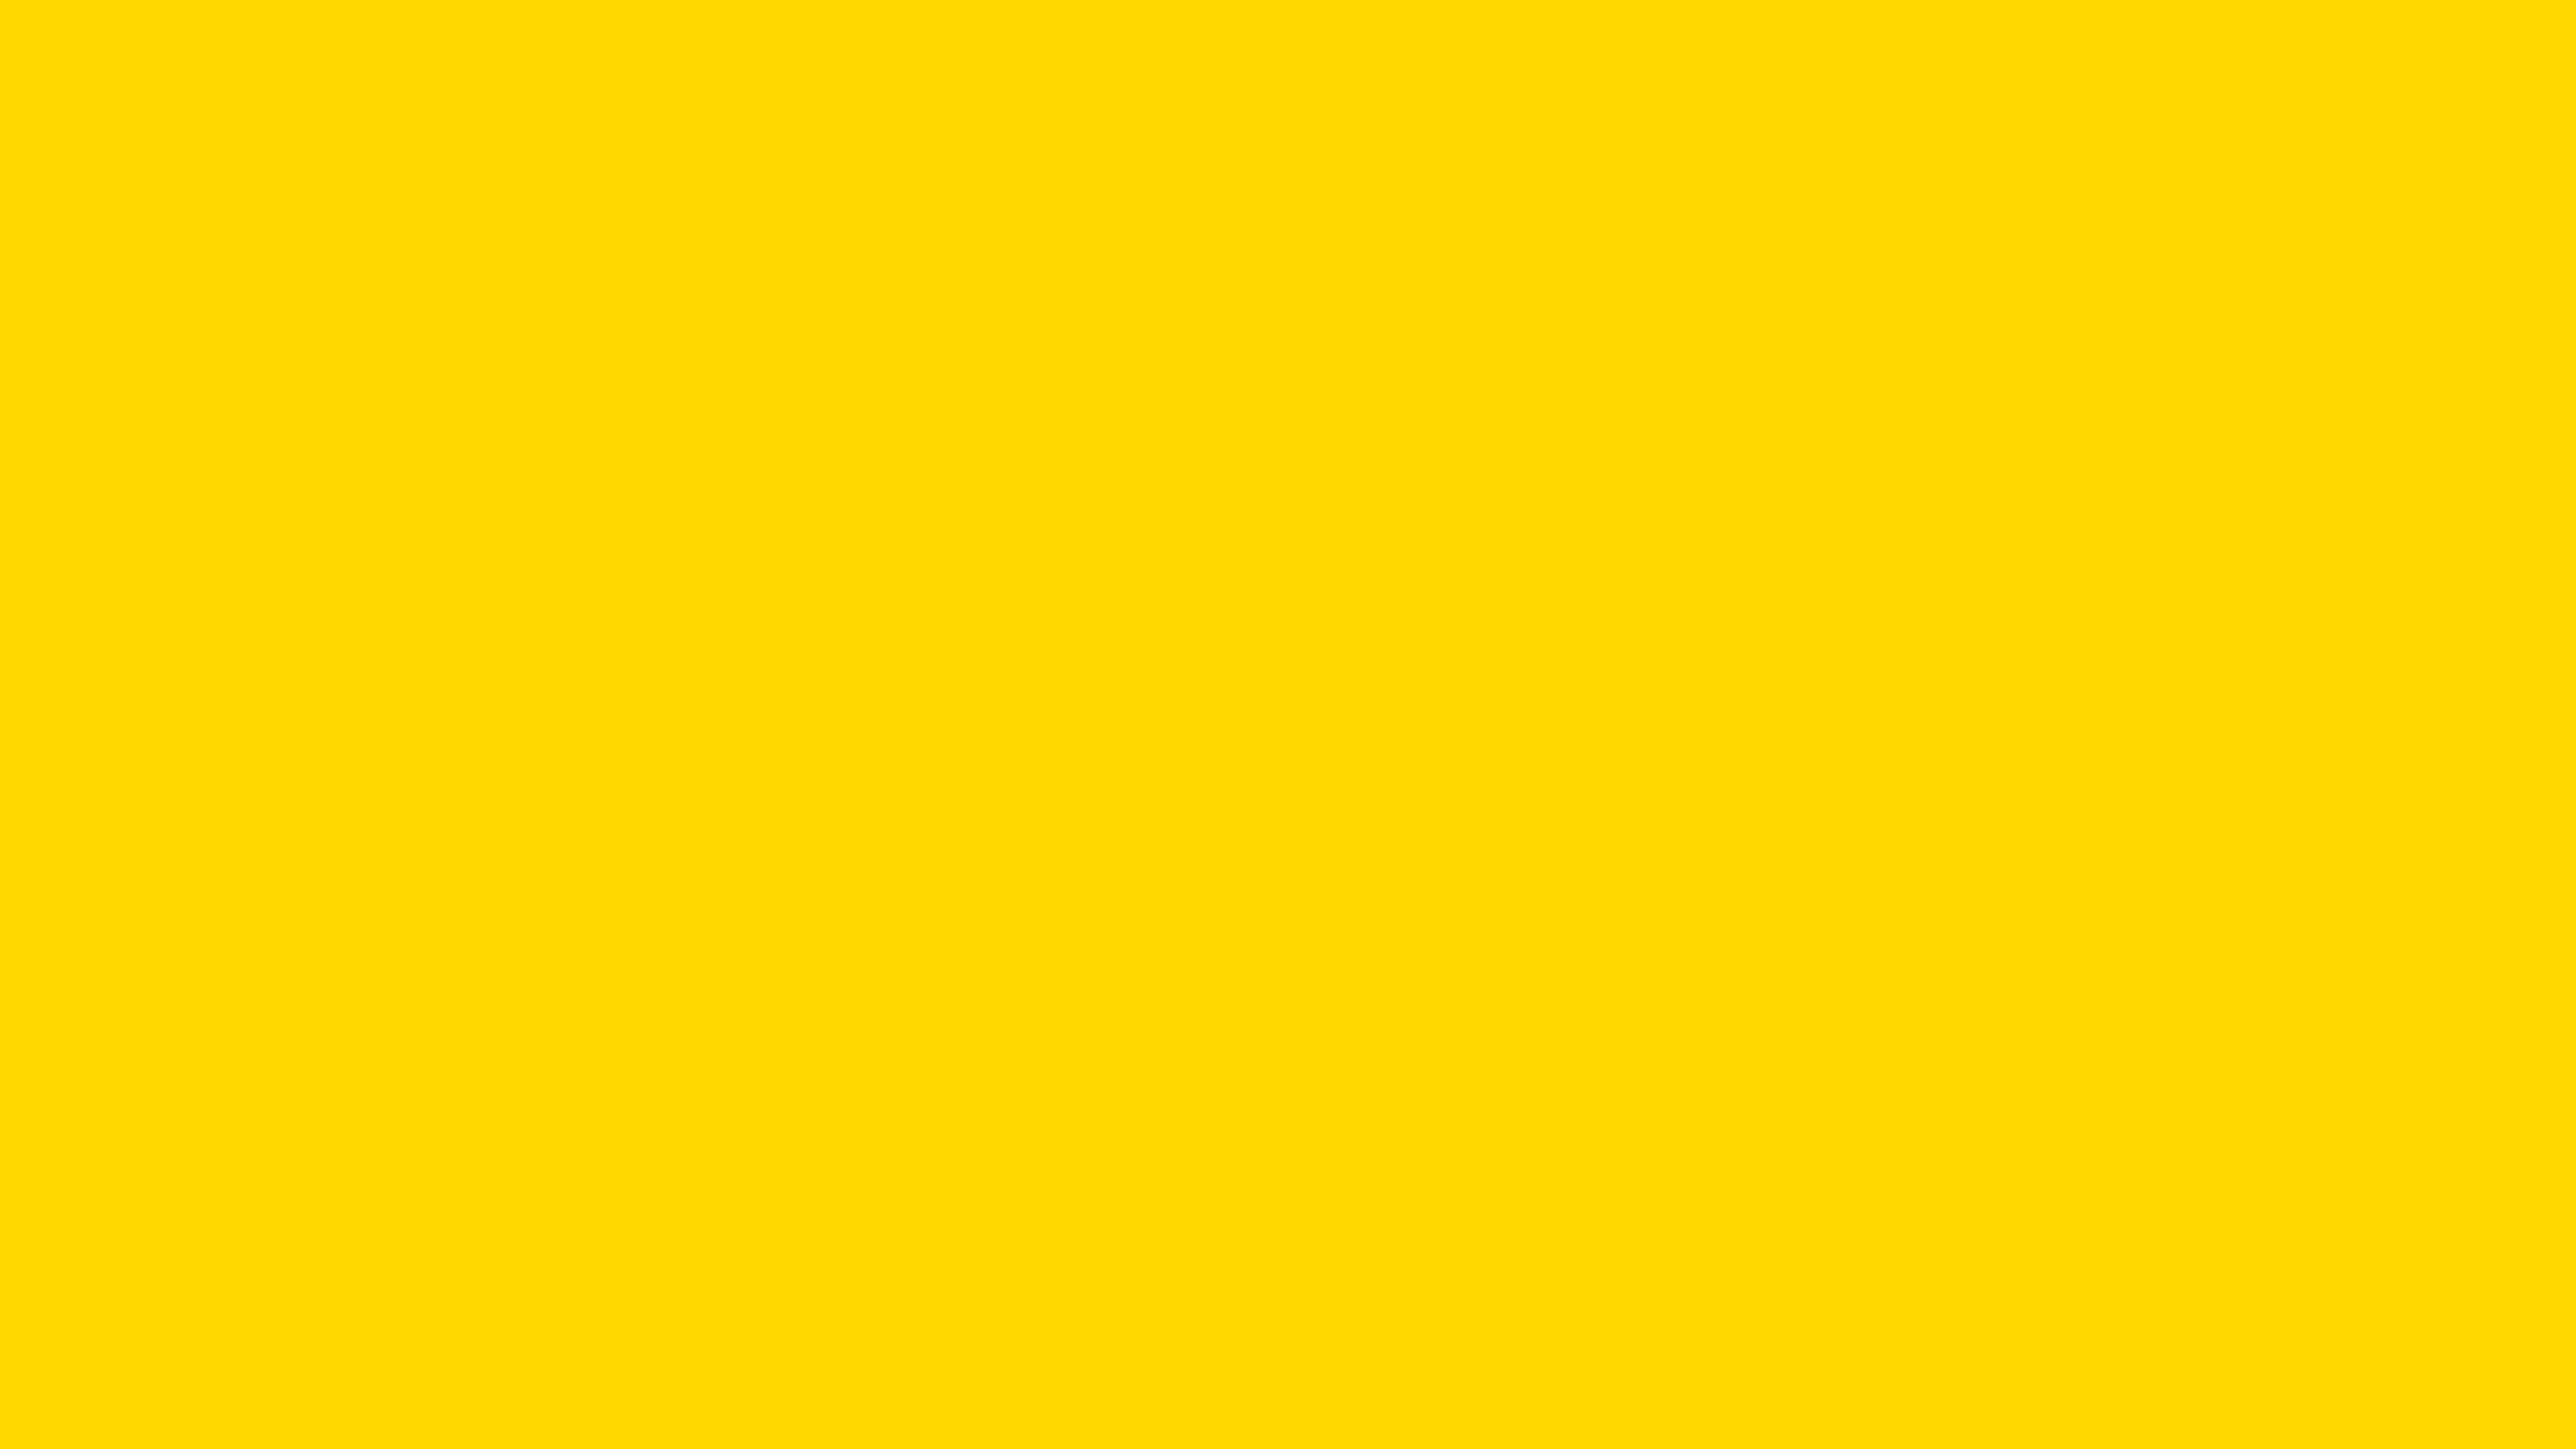 5120x2880 School Bus Yellow Solid Color Background